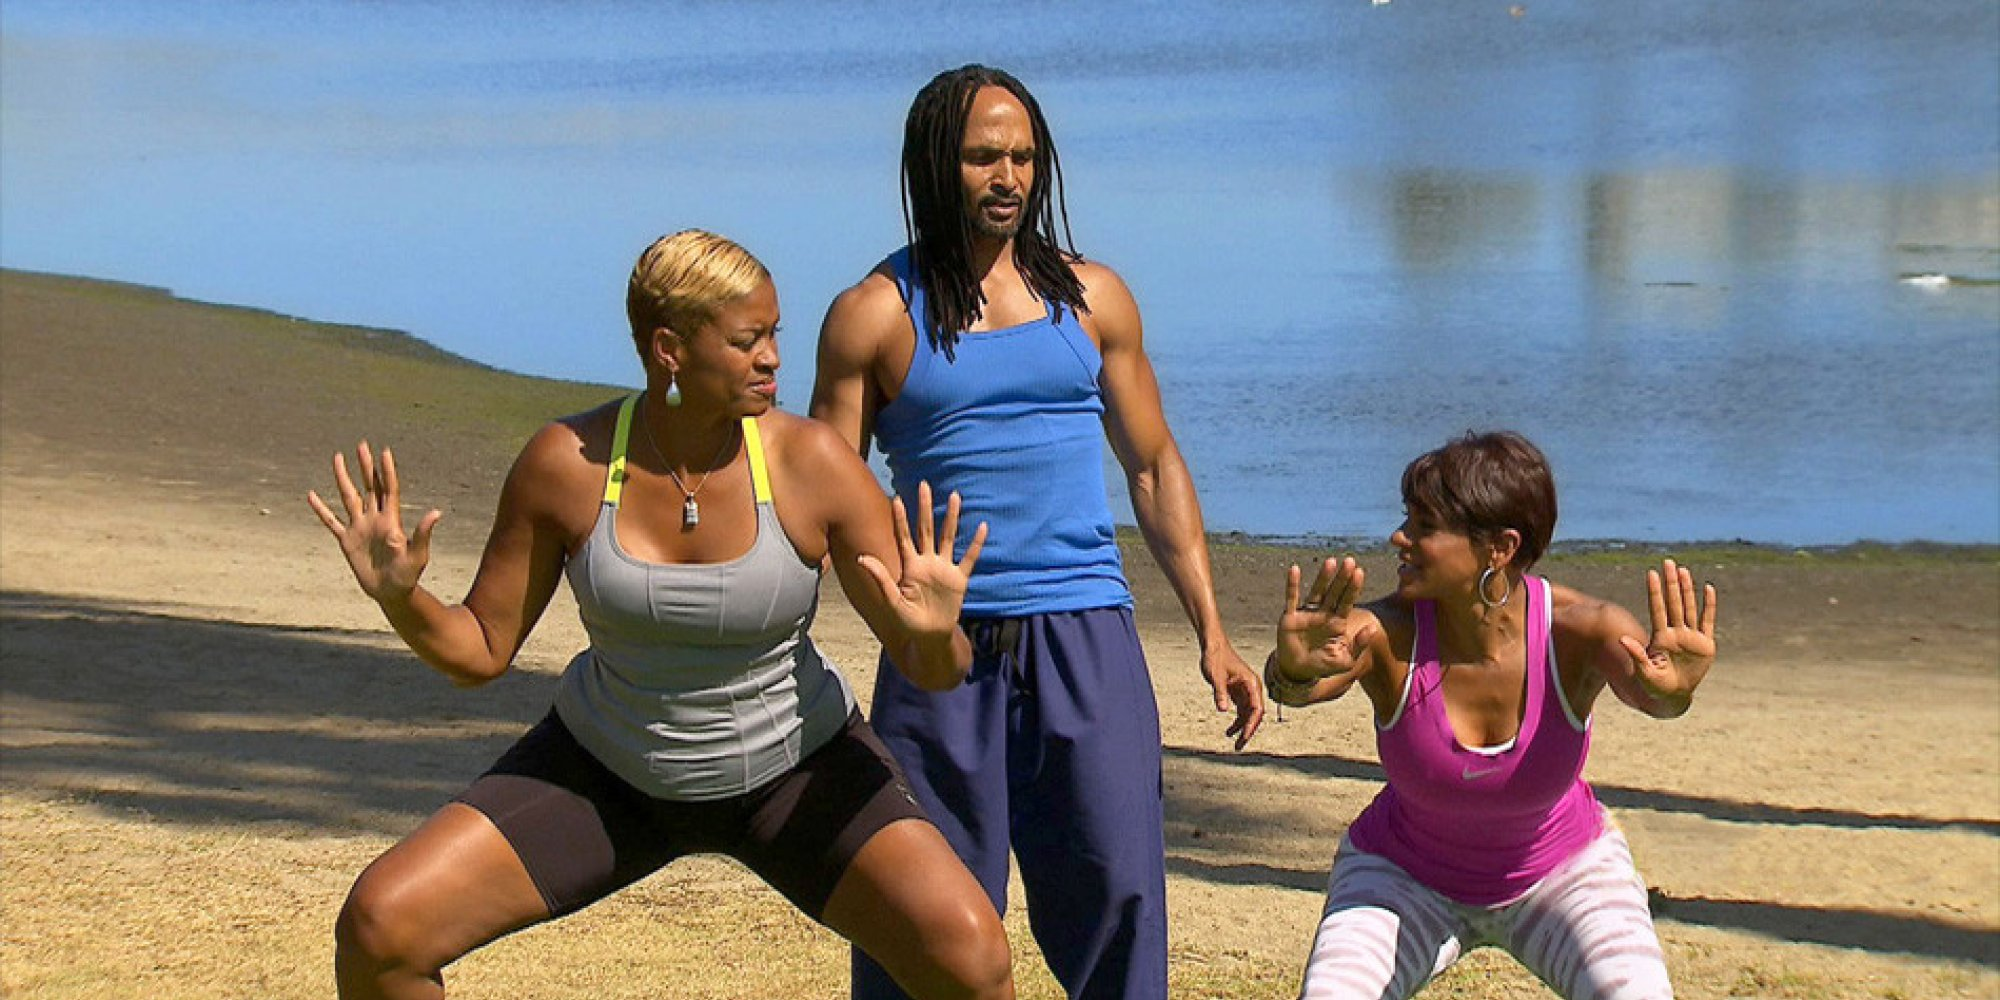 Pam Mcgee Works Out With A Fitness Expert She Dubs Black